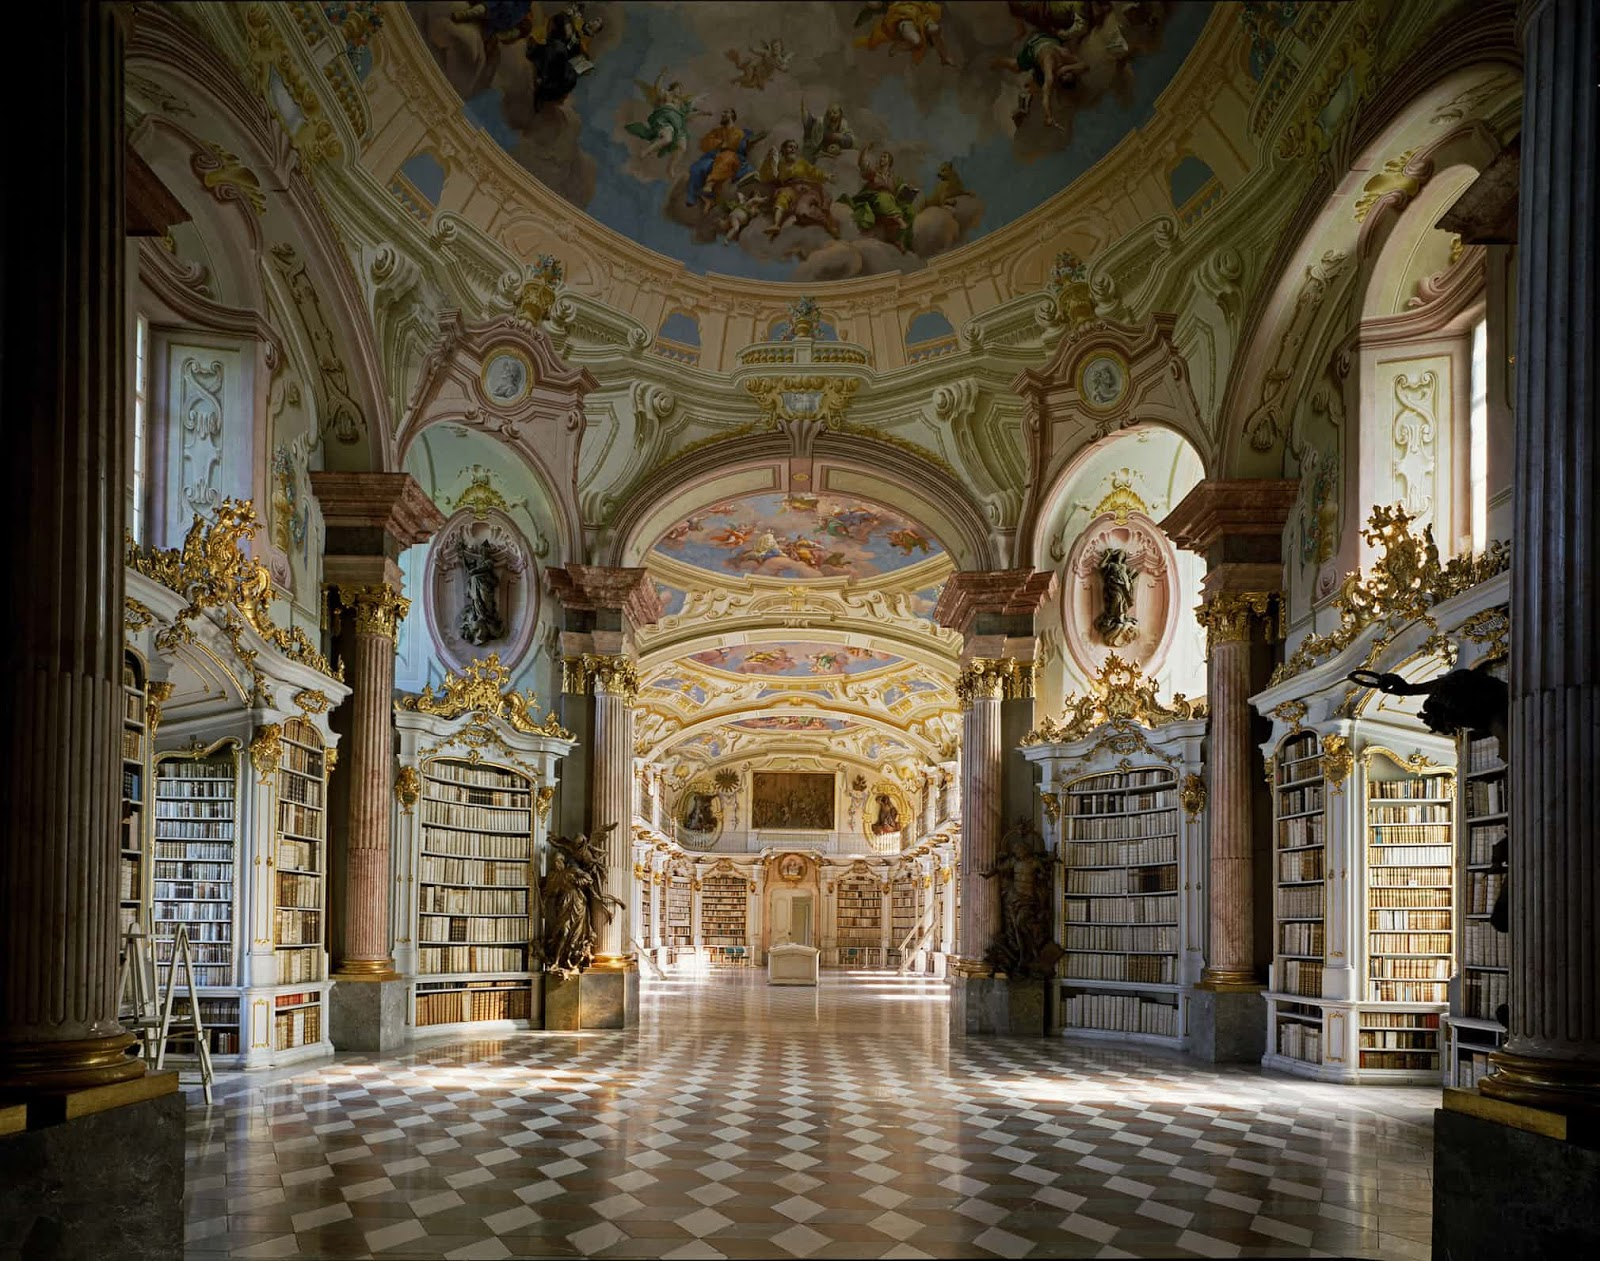 Mind-Blowing Pictures Of The World's Most Fascinating Libraries